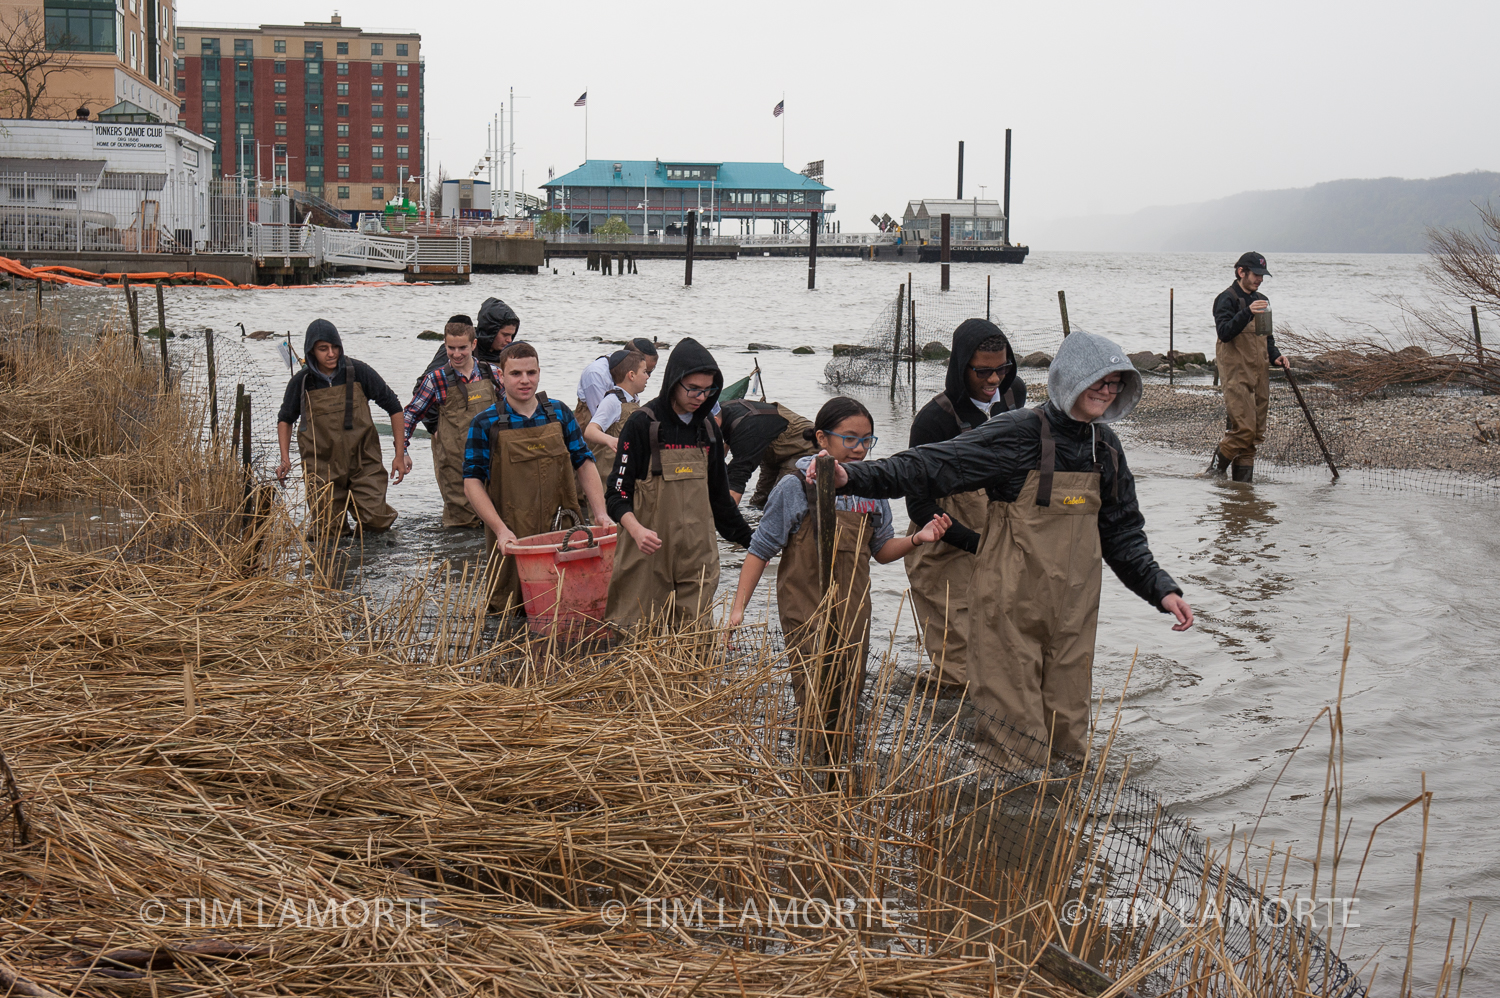 Sarah Mount leads participants through the salt marsh after collecting eels.